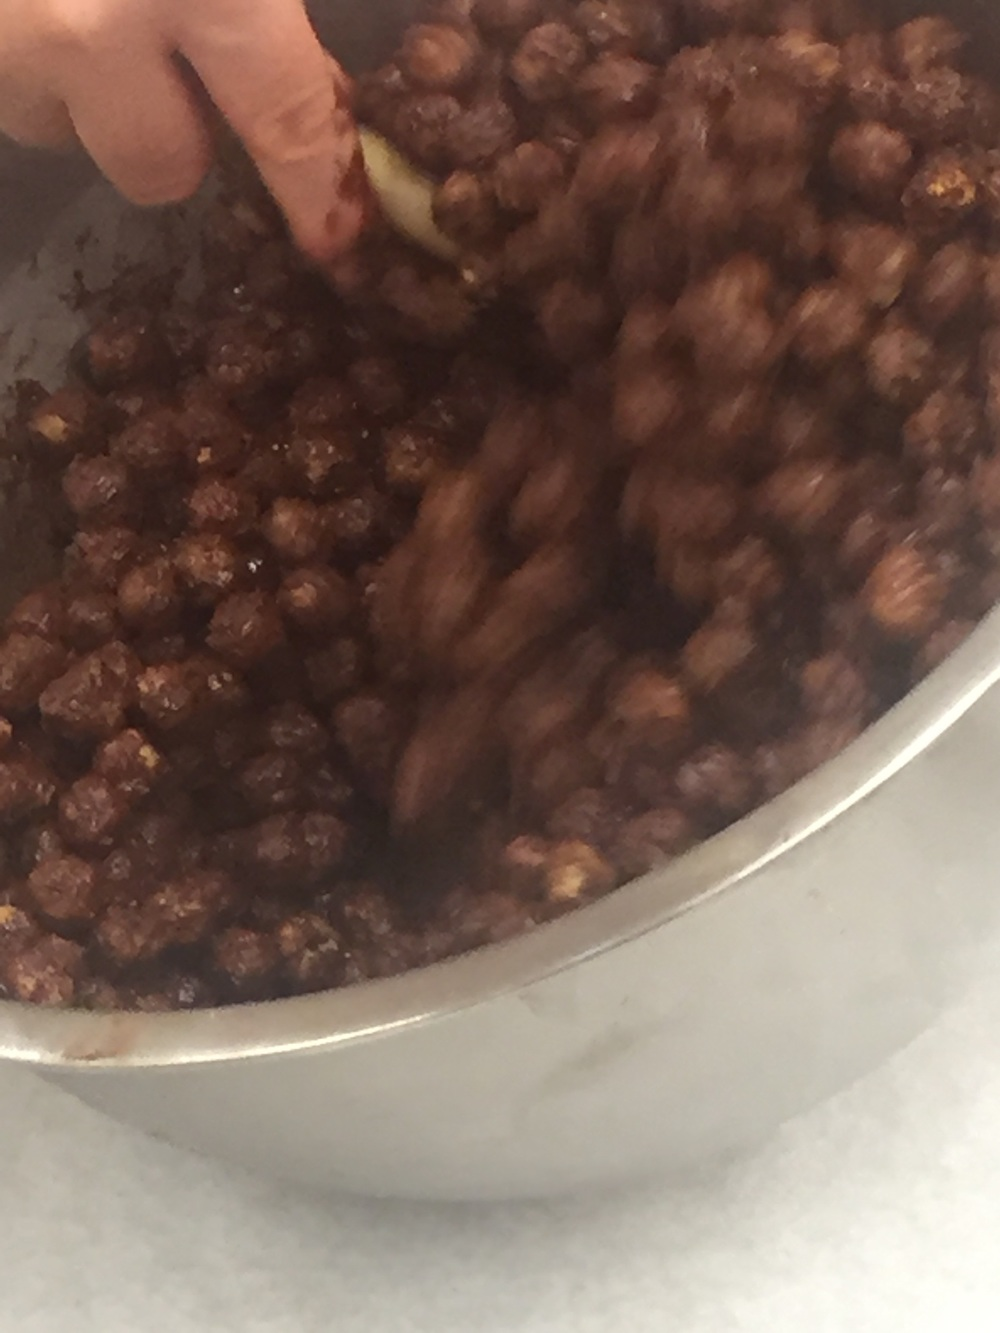 Coating the hazelnuts in a layer of chocolate